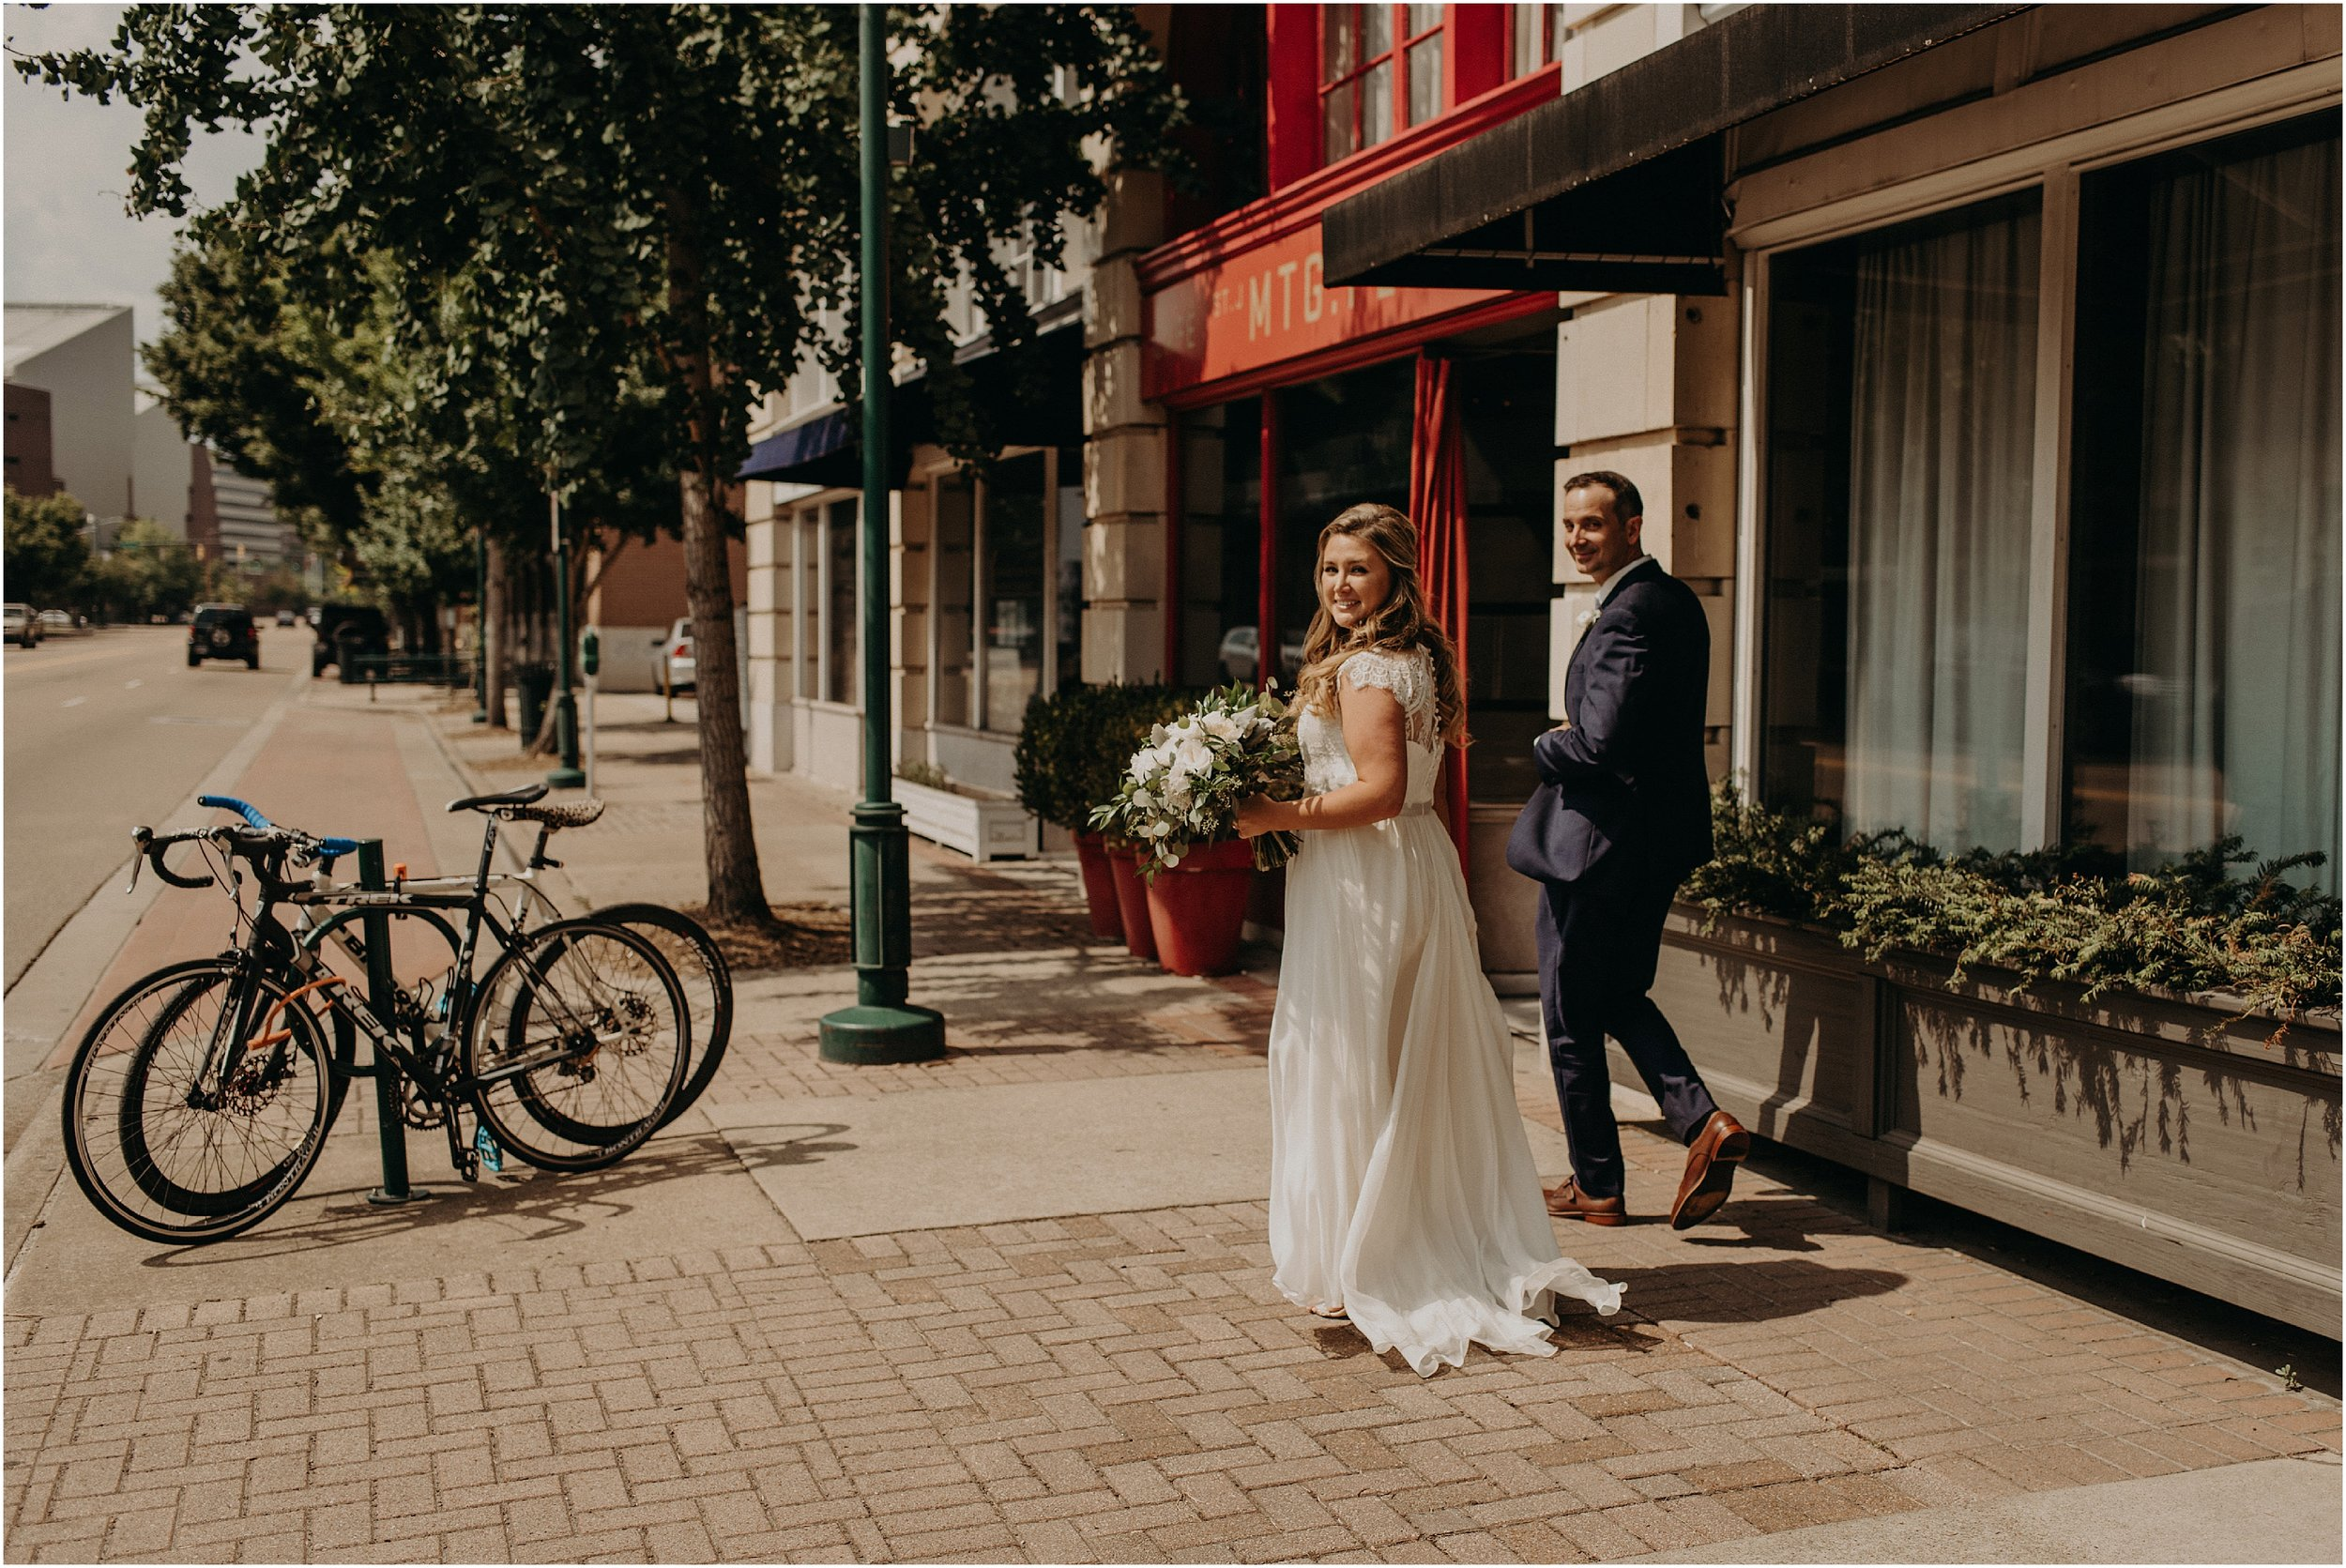 Urban city portraits for the bride and groom in Chattanooga, Tennessee